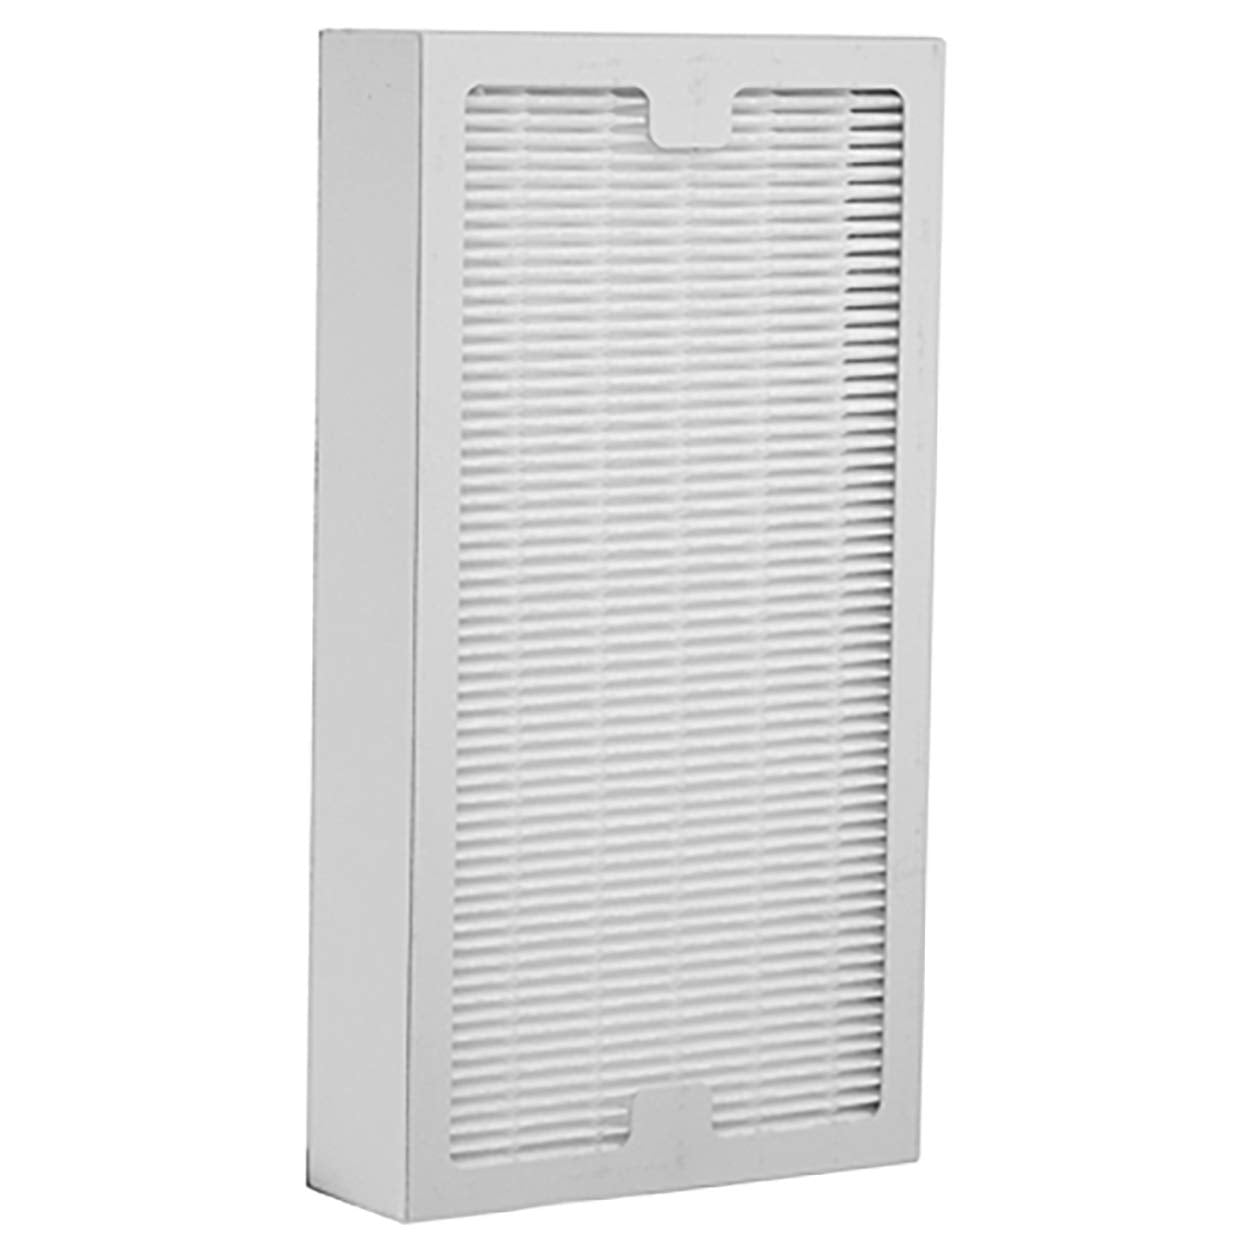 HunterHEPAFilter Hunter PermaLife Replacement Air Purifier Filter - 30966